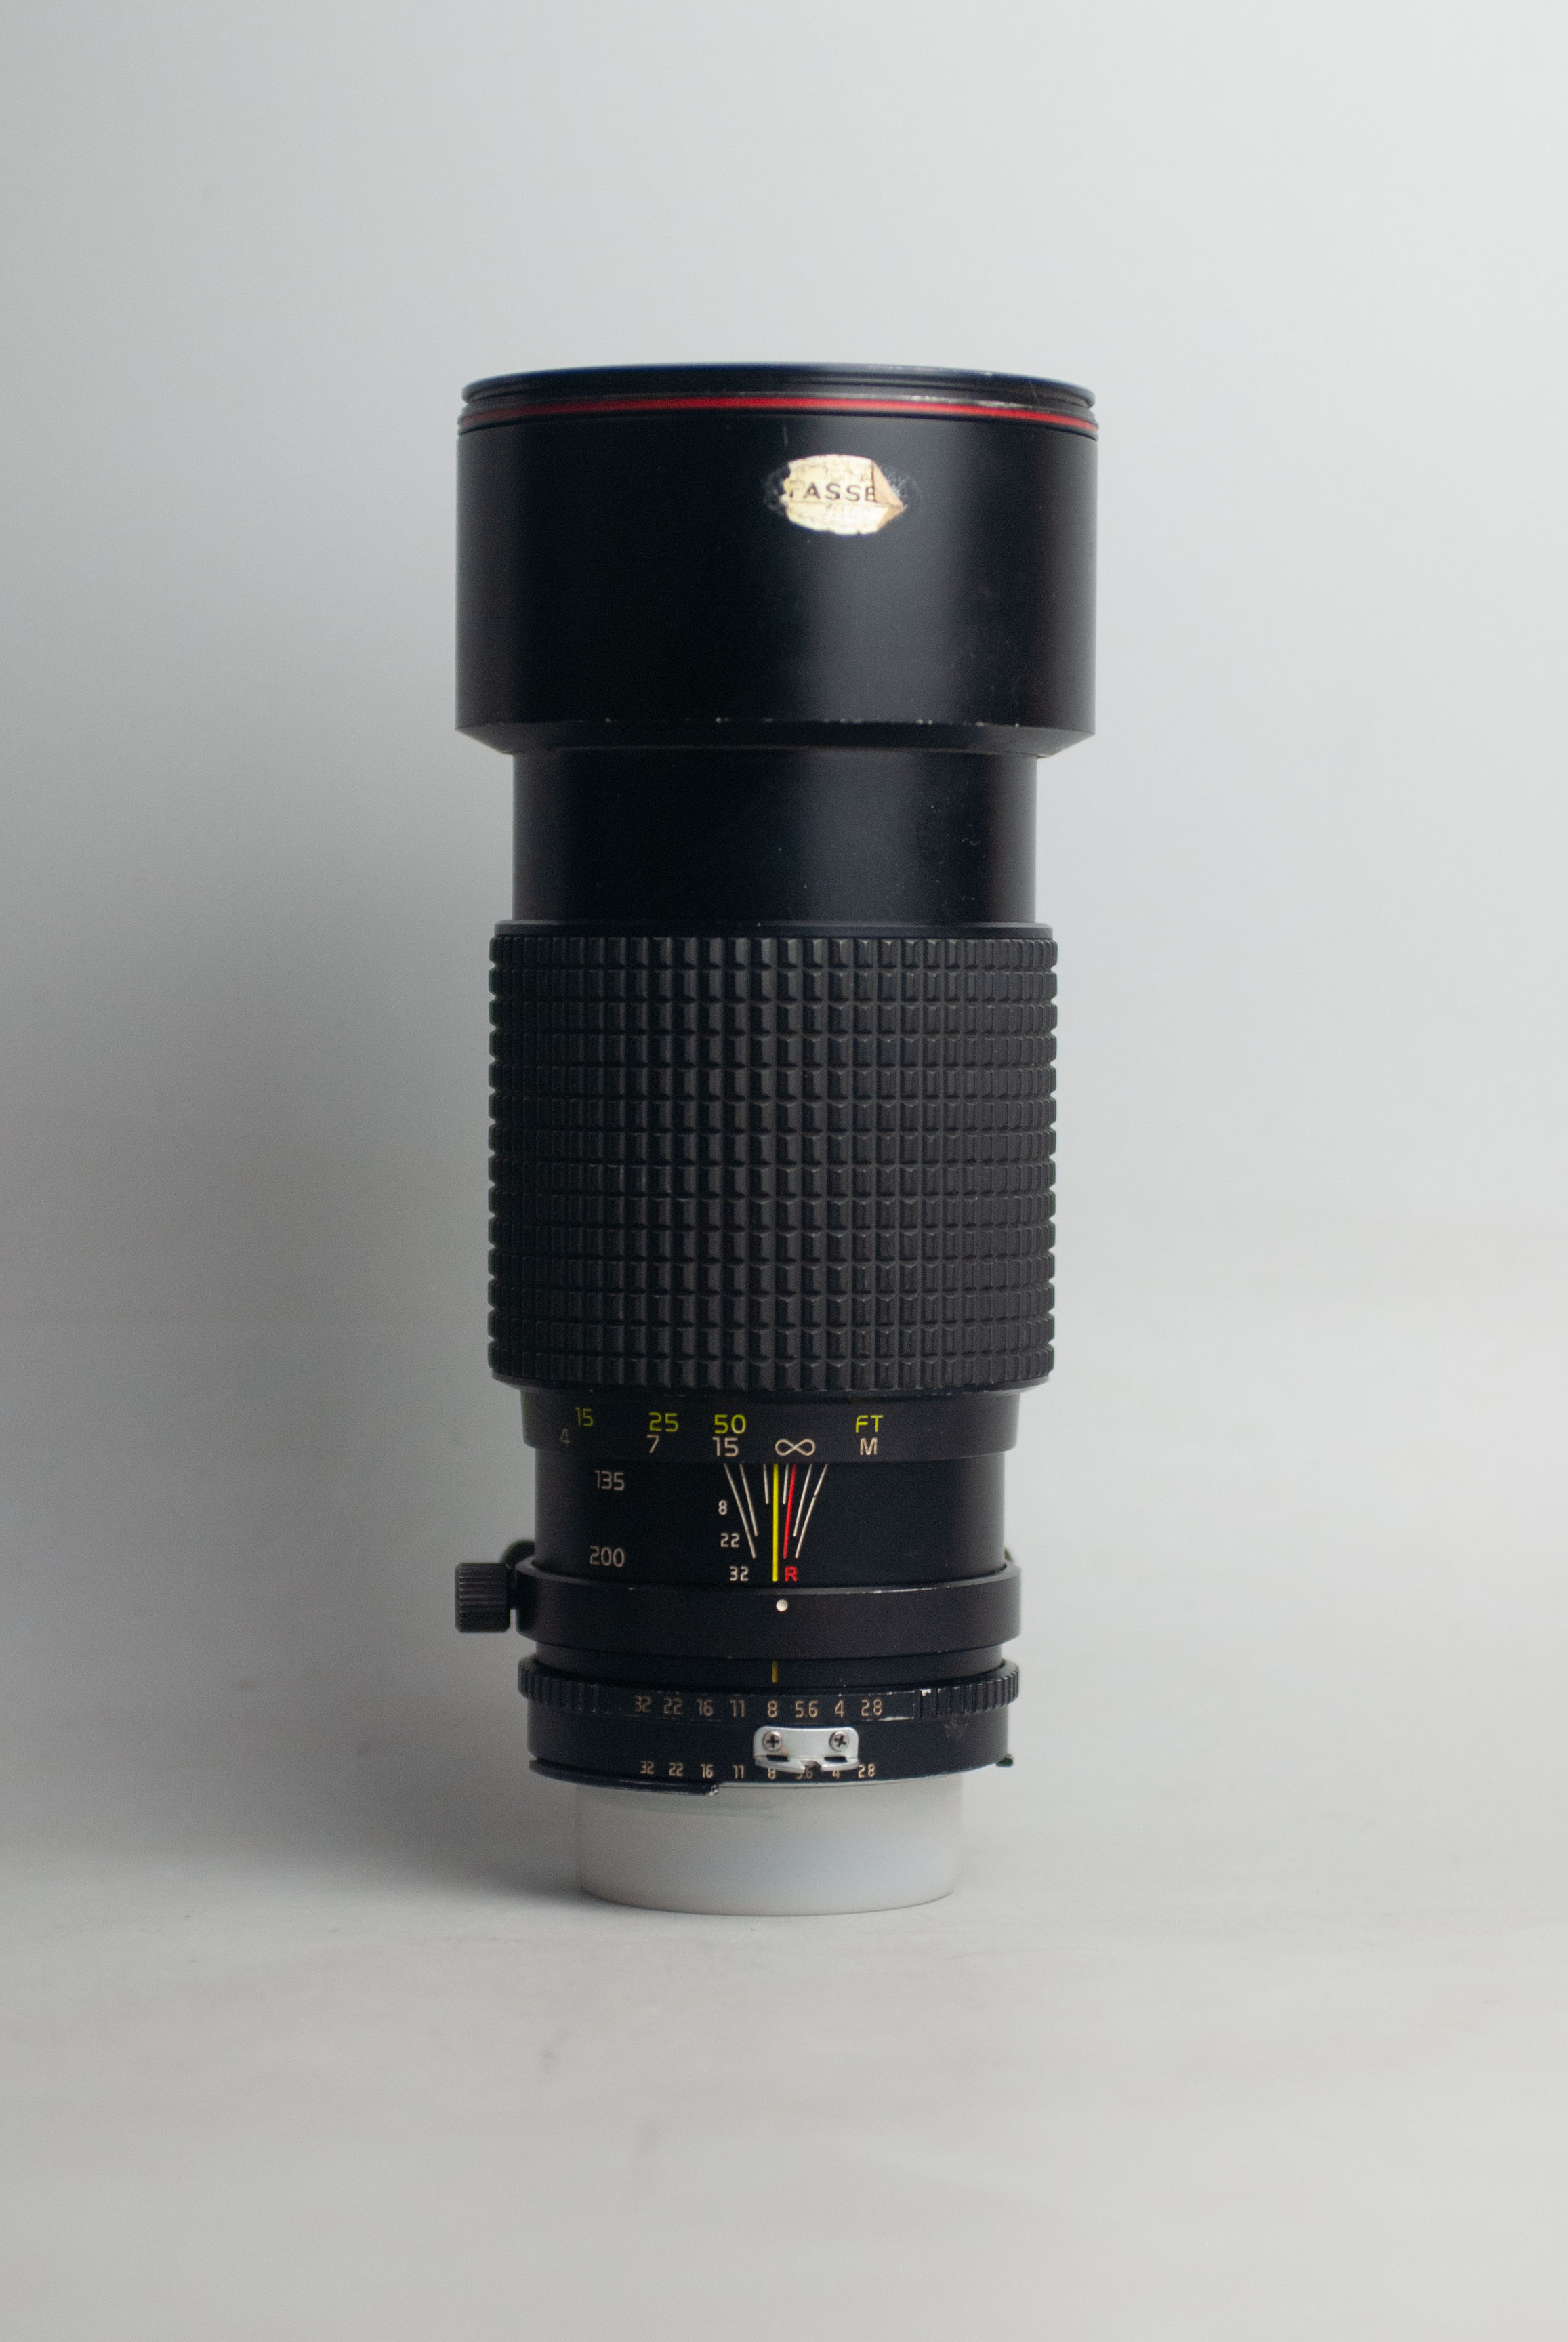 tokina-80-200mm-f2-8-mf-nikon-80-200-2-8-12304